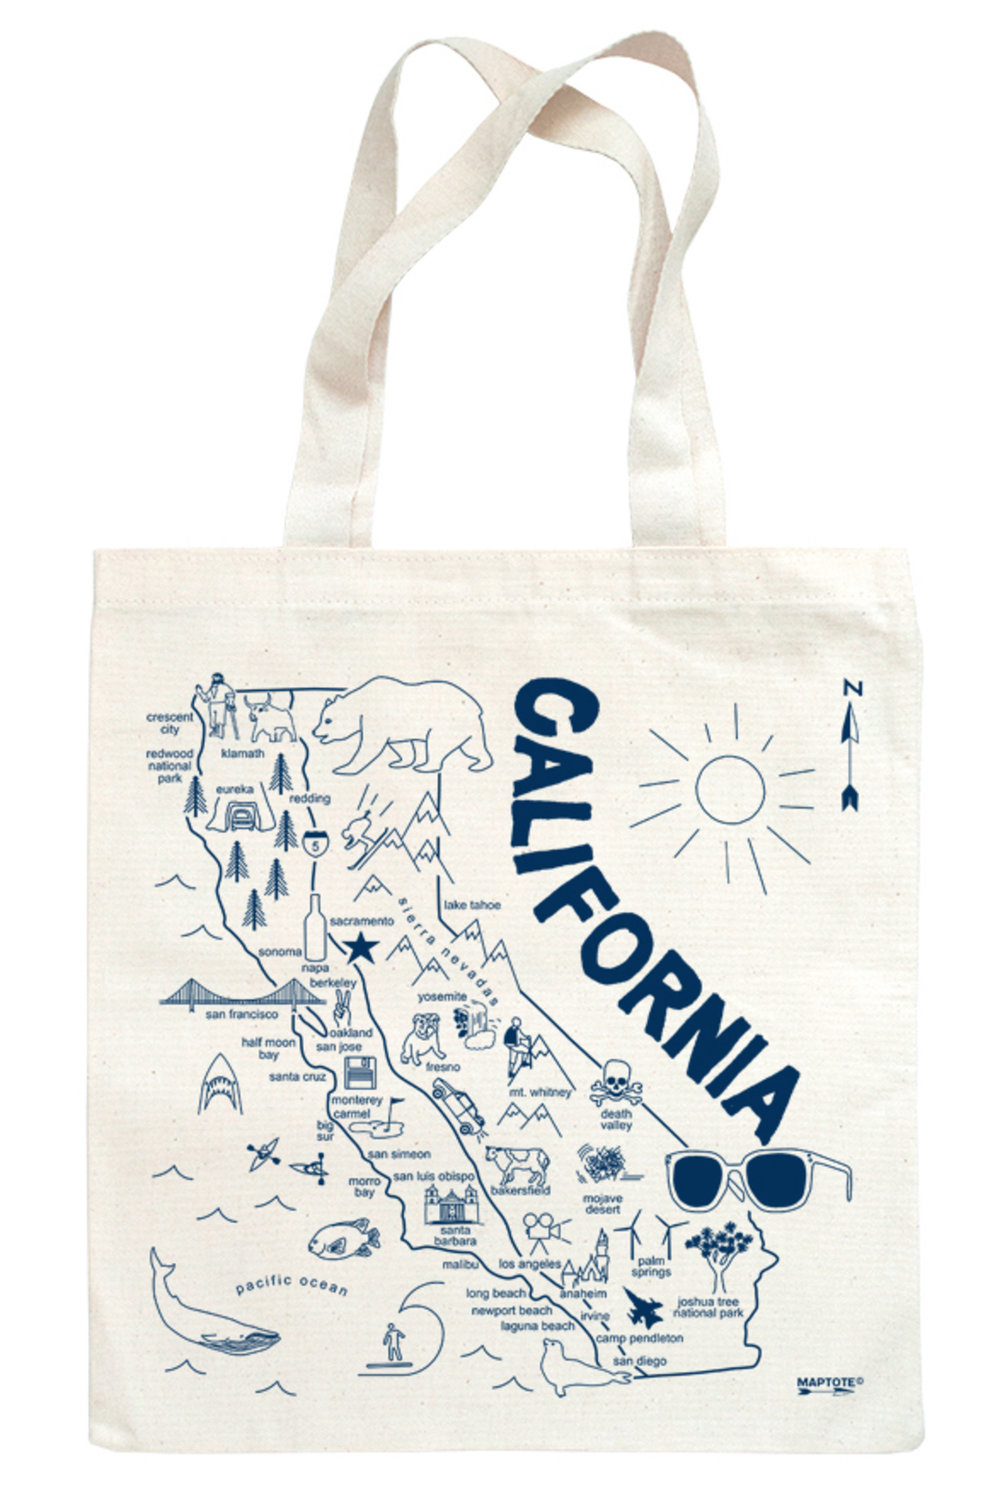 Maptote - Multiple Locations Available - $2010 Bag Minimum